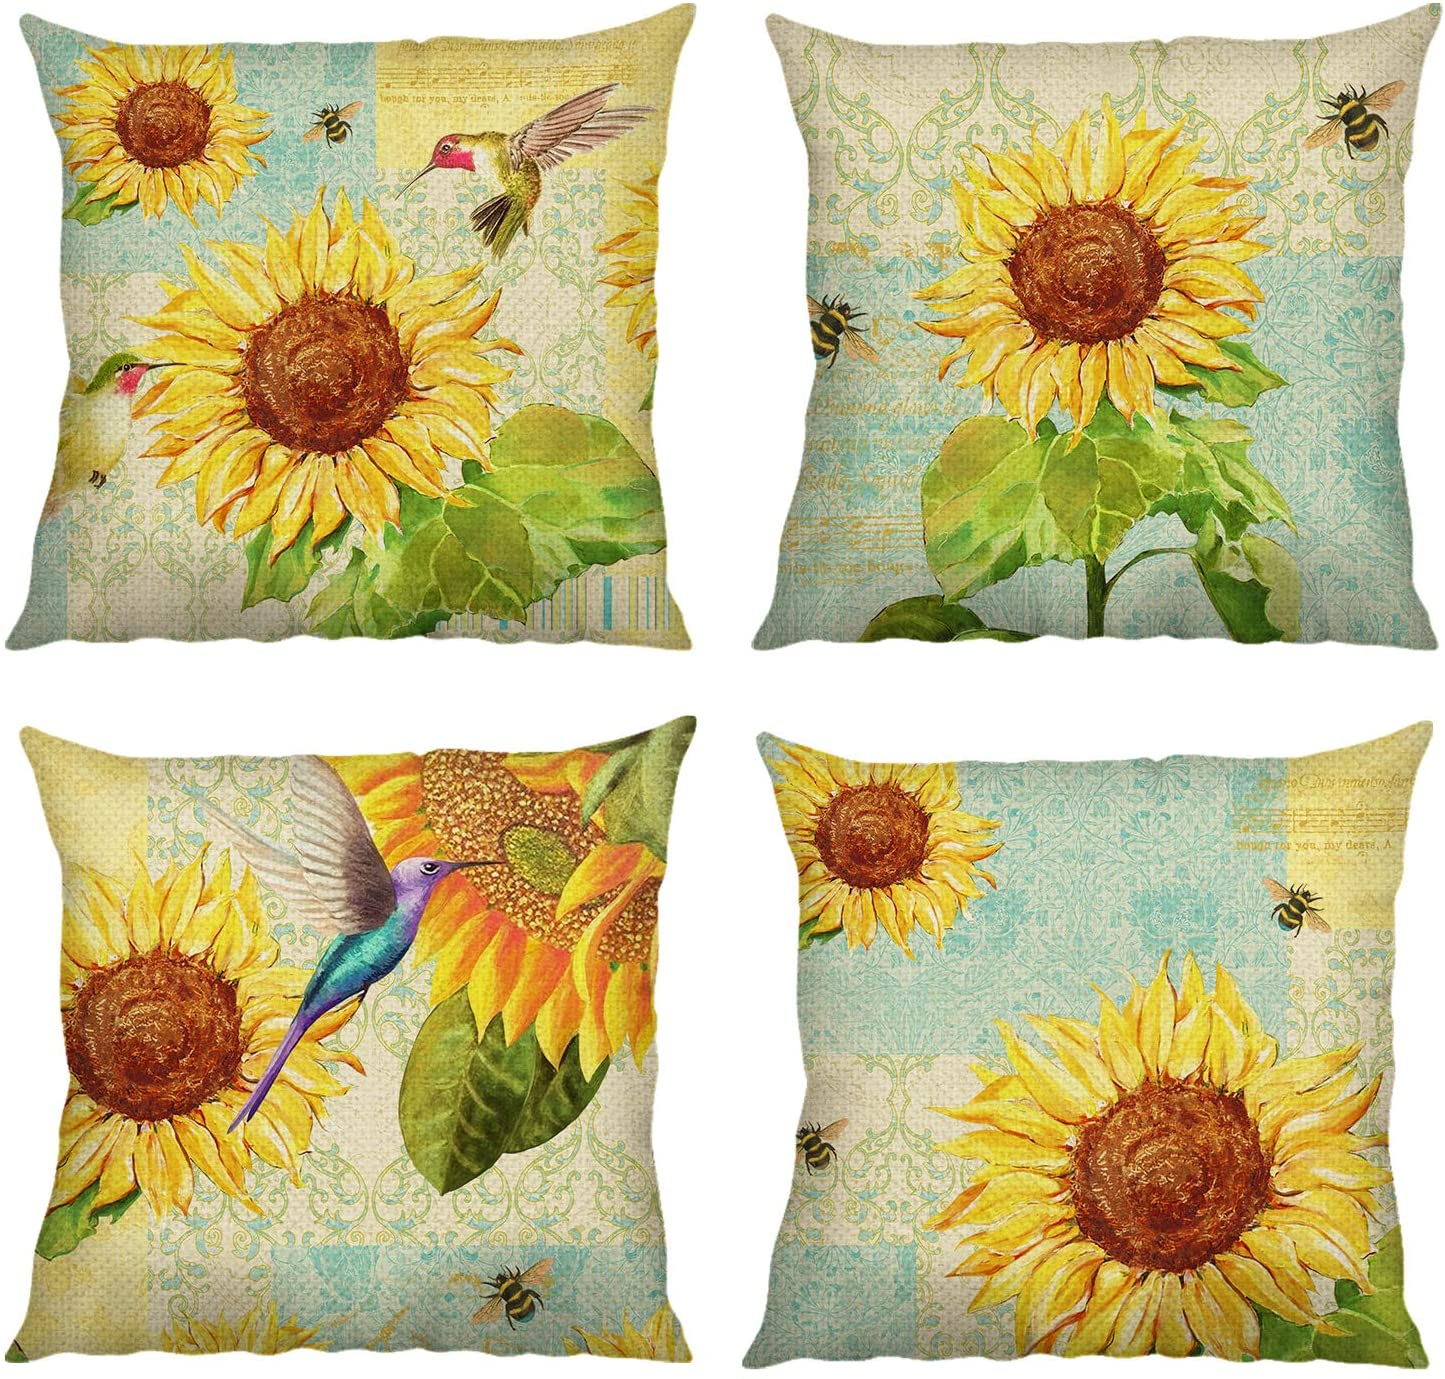 Bonhause Sunflower Throw Pillow Covers 18 x 18 Inch Set of 4 Bird Bees Decorative Throw Pillow Cases Cotton Linen Square Cushion Covers for Sofa Couch Car Bedroom Home Décor